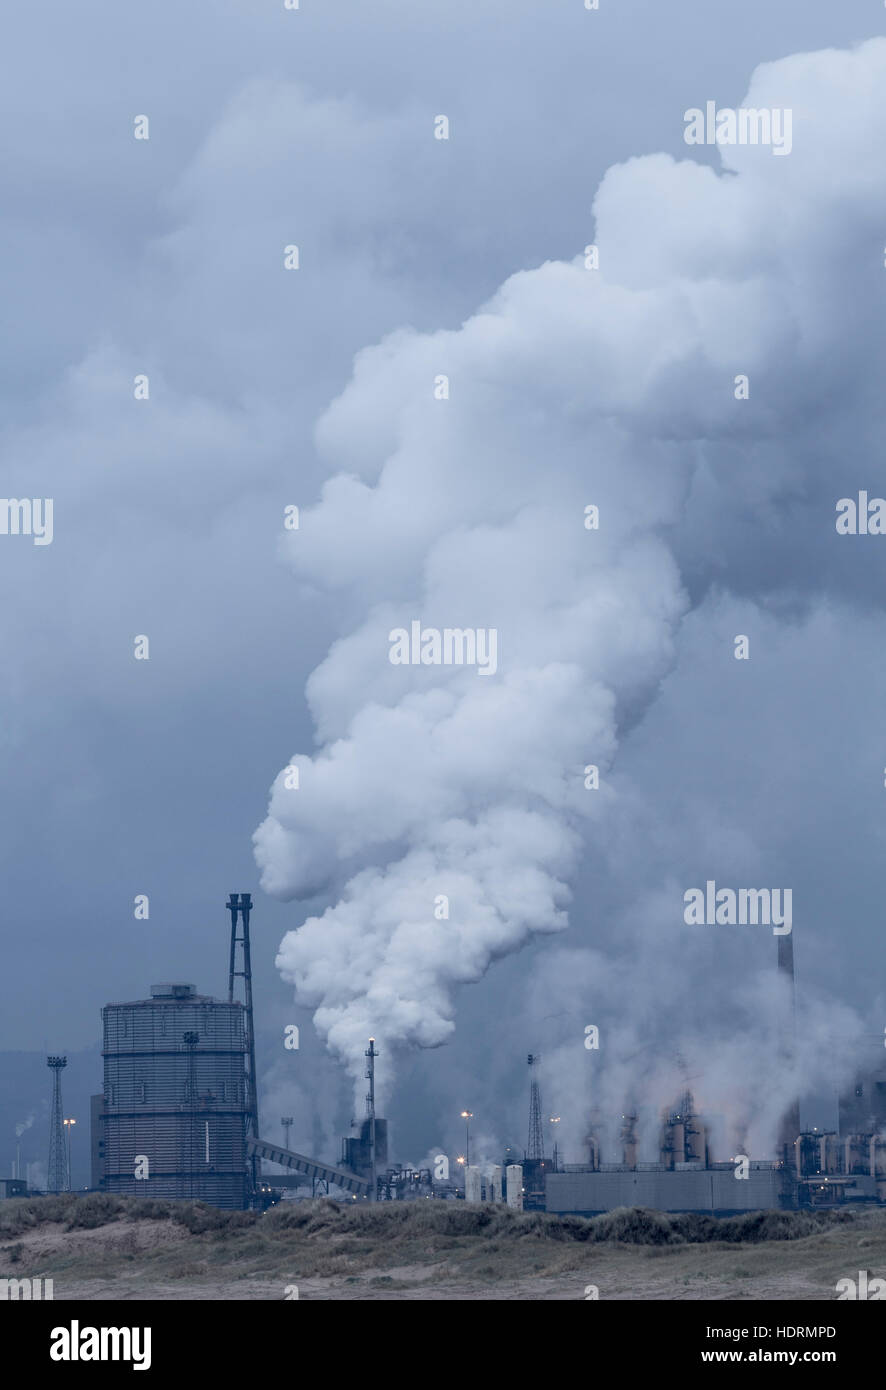 Blast Furnace Steam Steelworks Stock Photos & Blast Furnace Steam ...